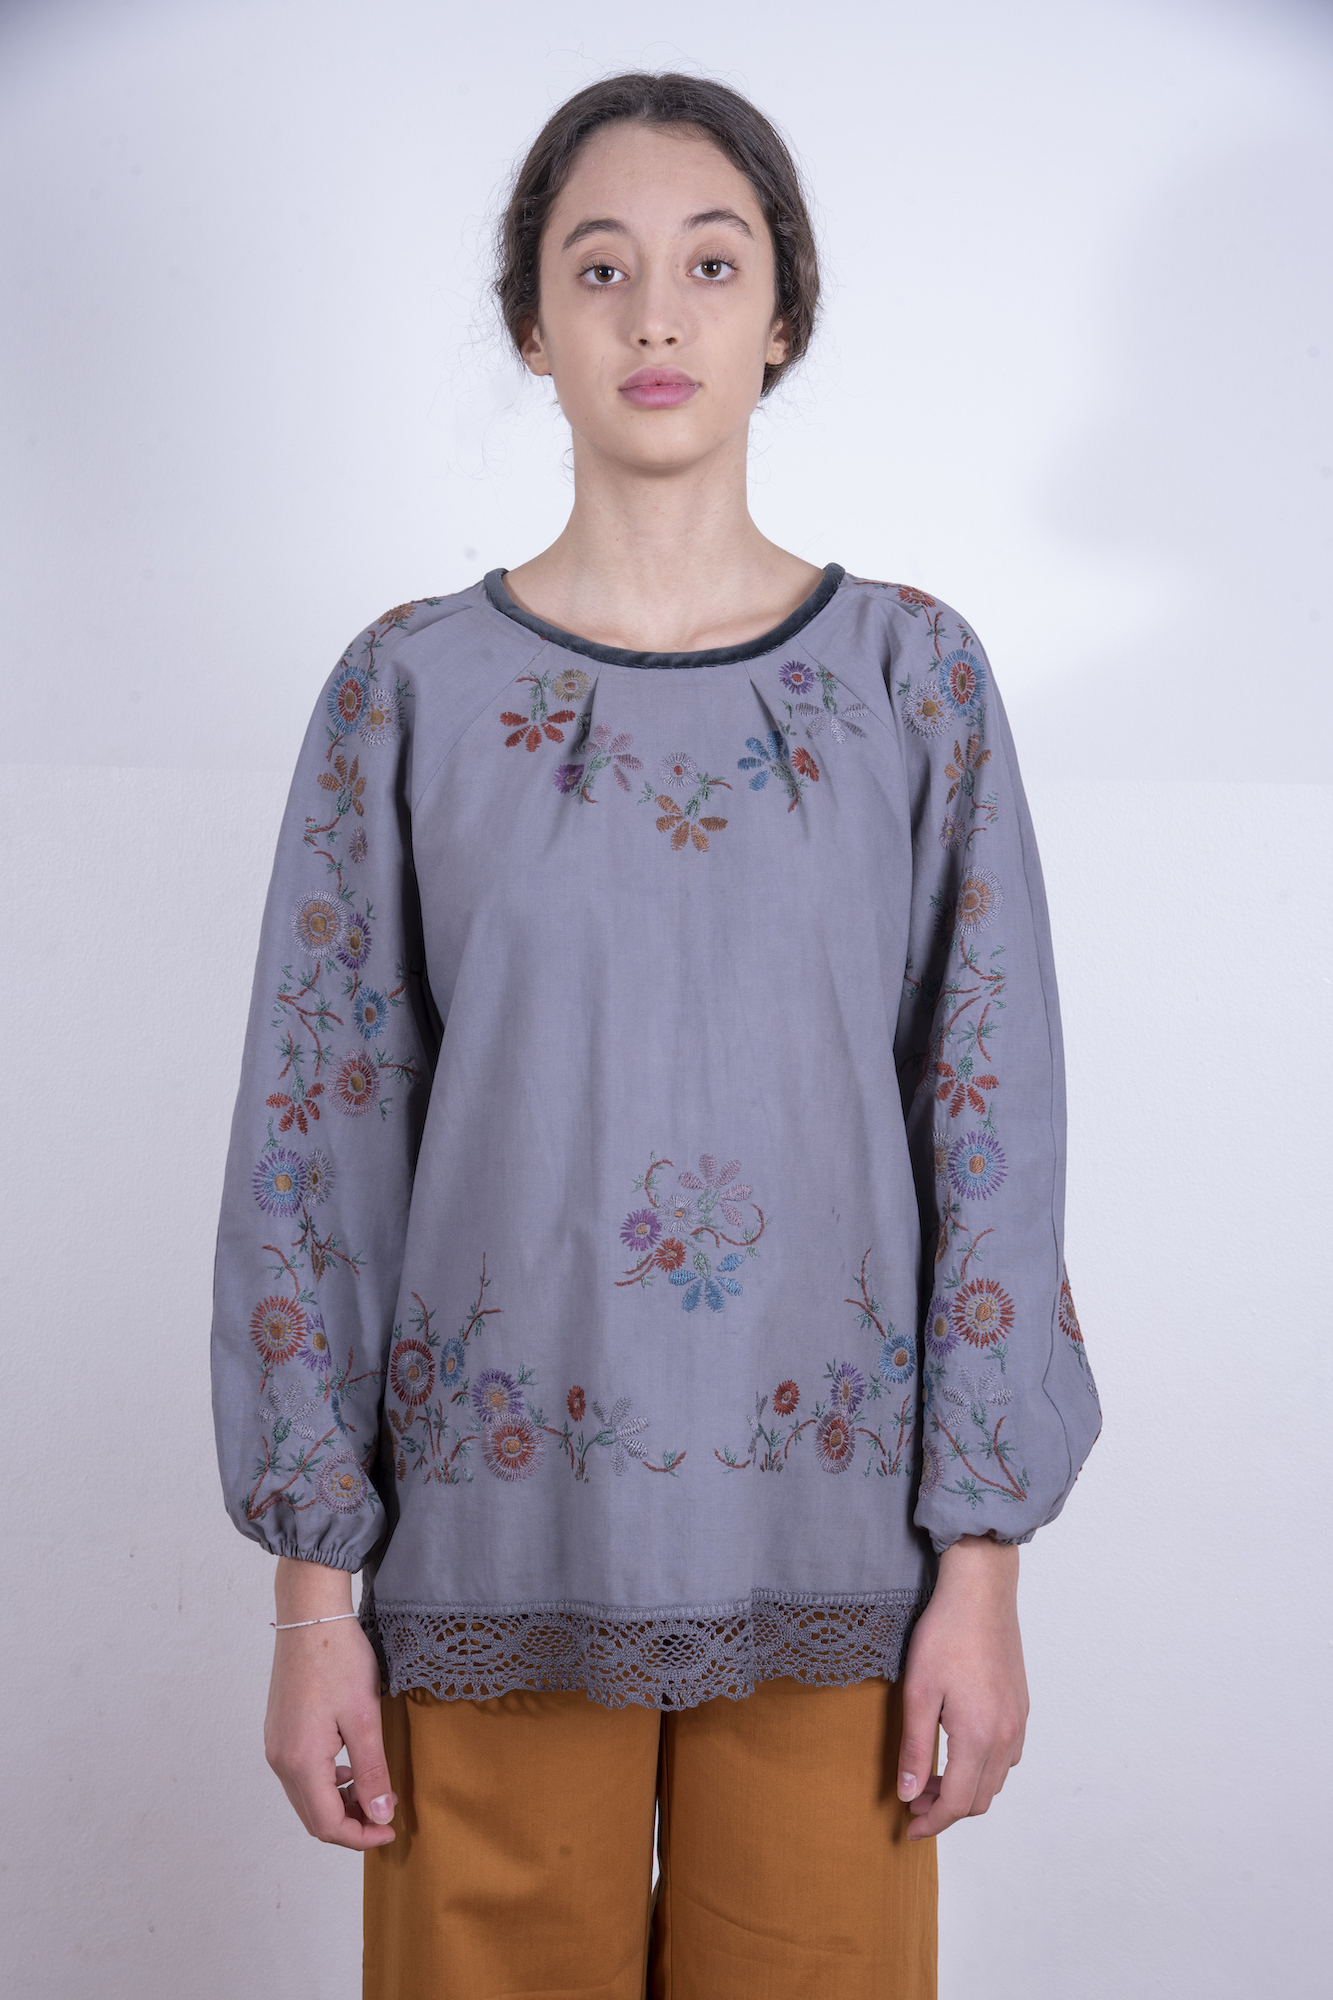 Grey blouse with multicolored embroidery